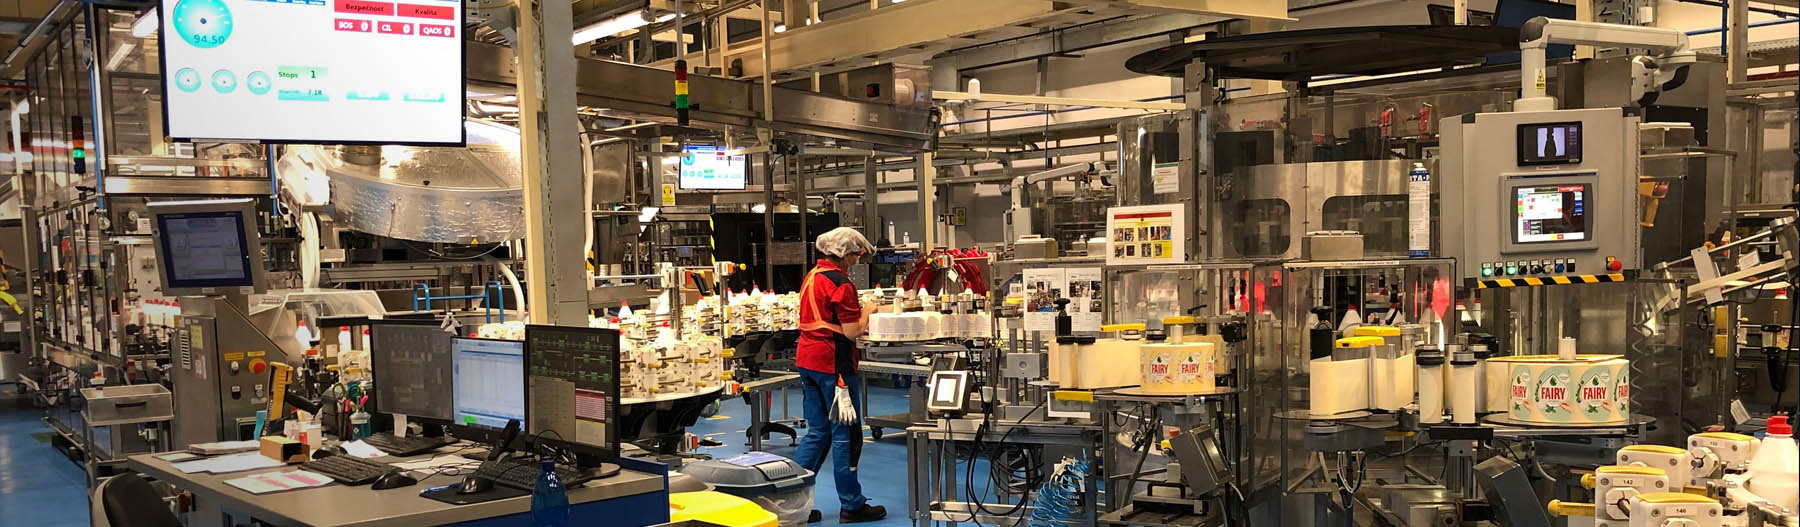 EY - A worker is seen on the dish packing line